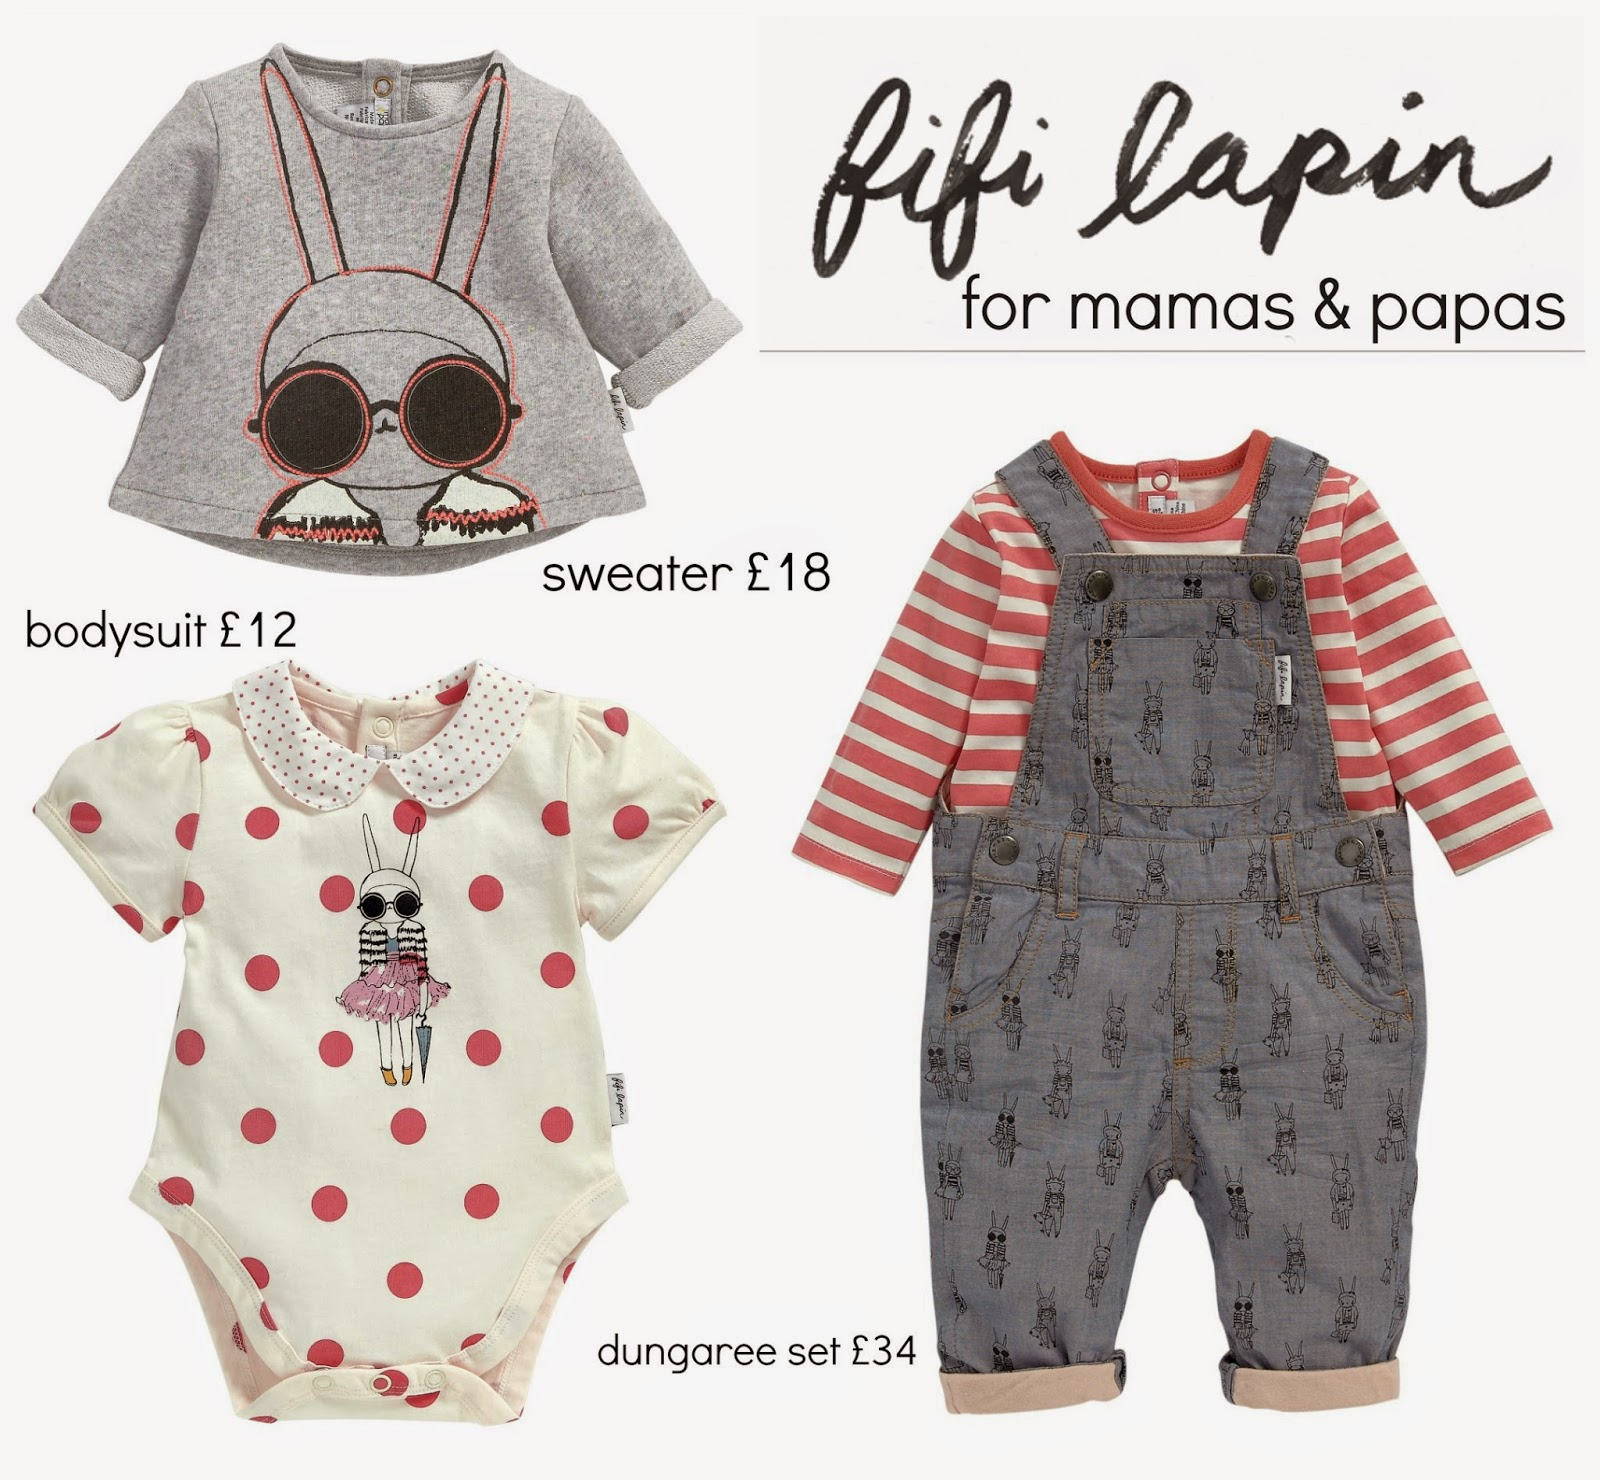 mamasVIb | V. I. BRAND: The Fifi Lapin exclusive kids collection launches at Mamas & Papas | fiifi lapin | fit lapin for mamas and papas | new collection | new launch | kids style | exclusive fashion collection | fiifi | bunny | blogging bunny | mamas and papas | girls clothes | bedding | fit lapin teddy | bunny | exclusive range | lapin | blogging | fashion | kids | style | mamasVIB | tops for girls | bunny print | bunny style | mamas | papas | shop | online collection | fifi